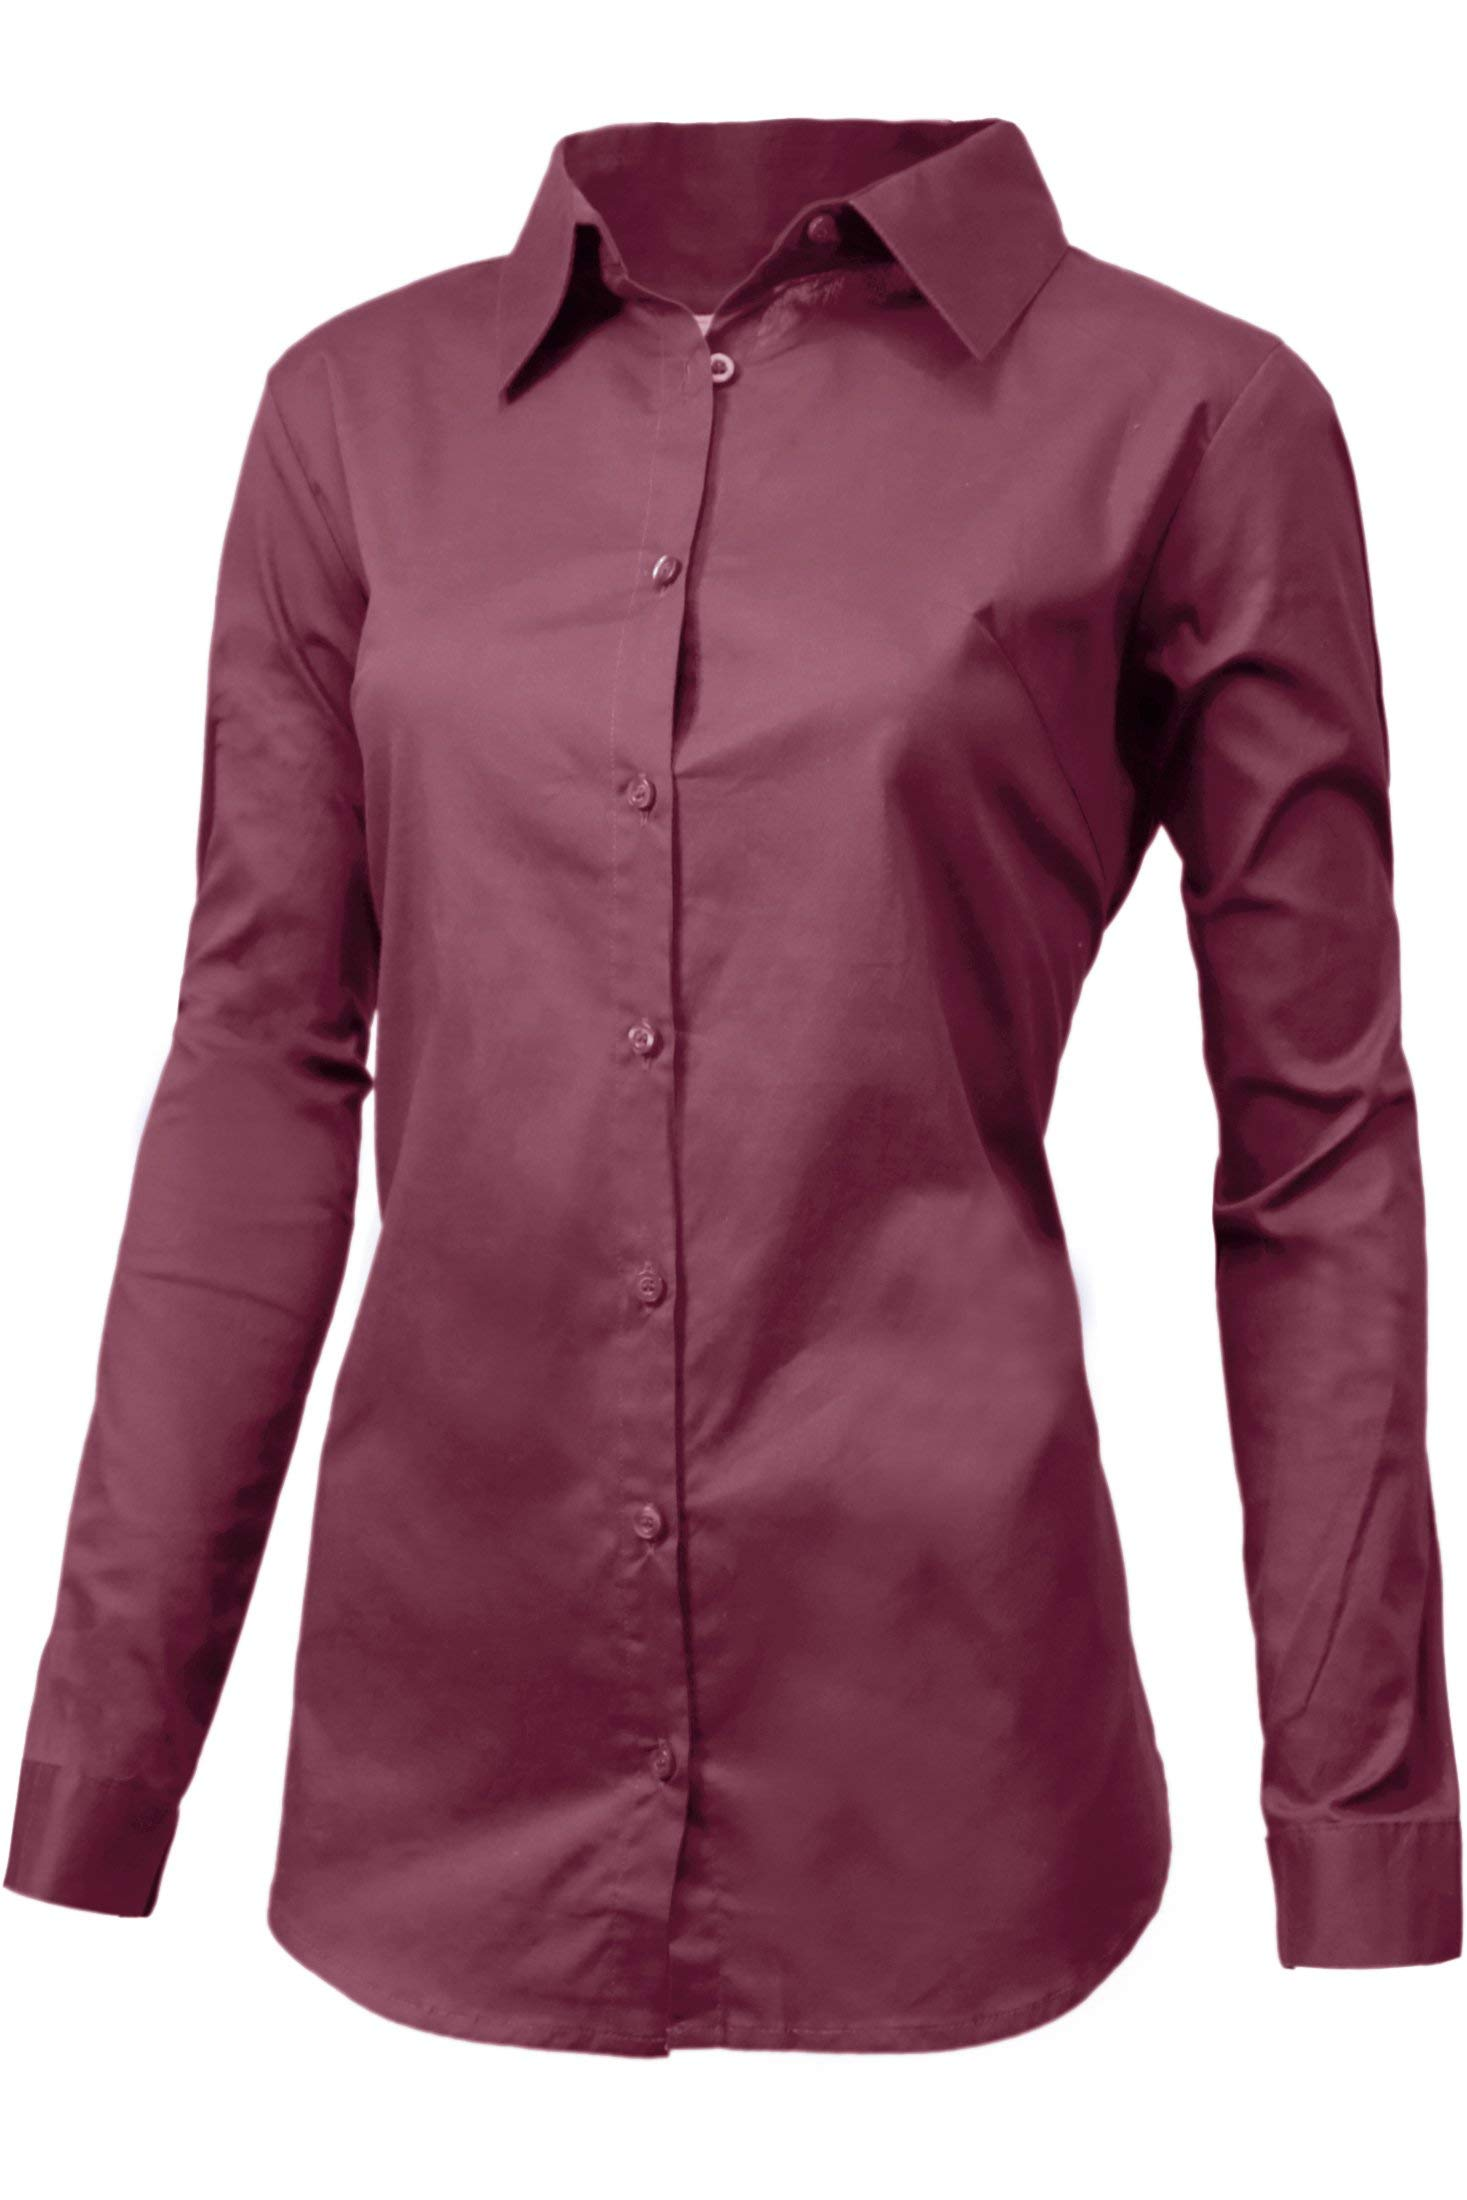 Women's Small to 3X Office Casual Stretchy Blouse Button Down Long Sleeve Shirt